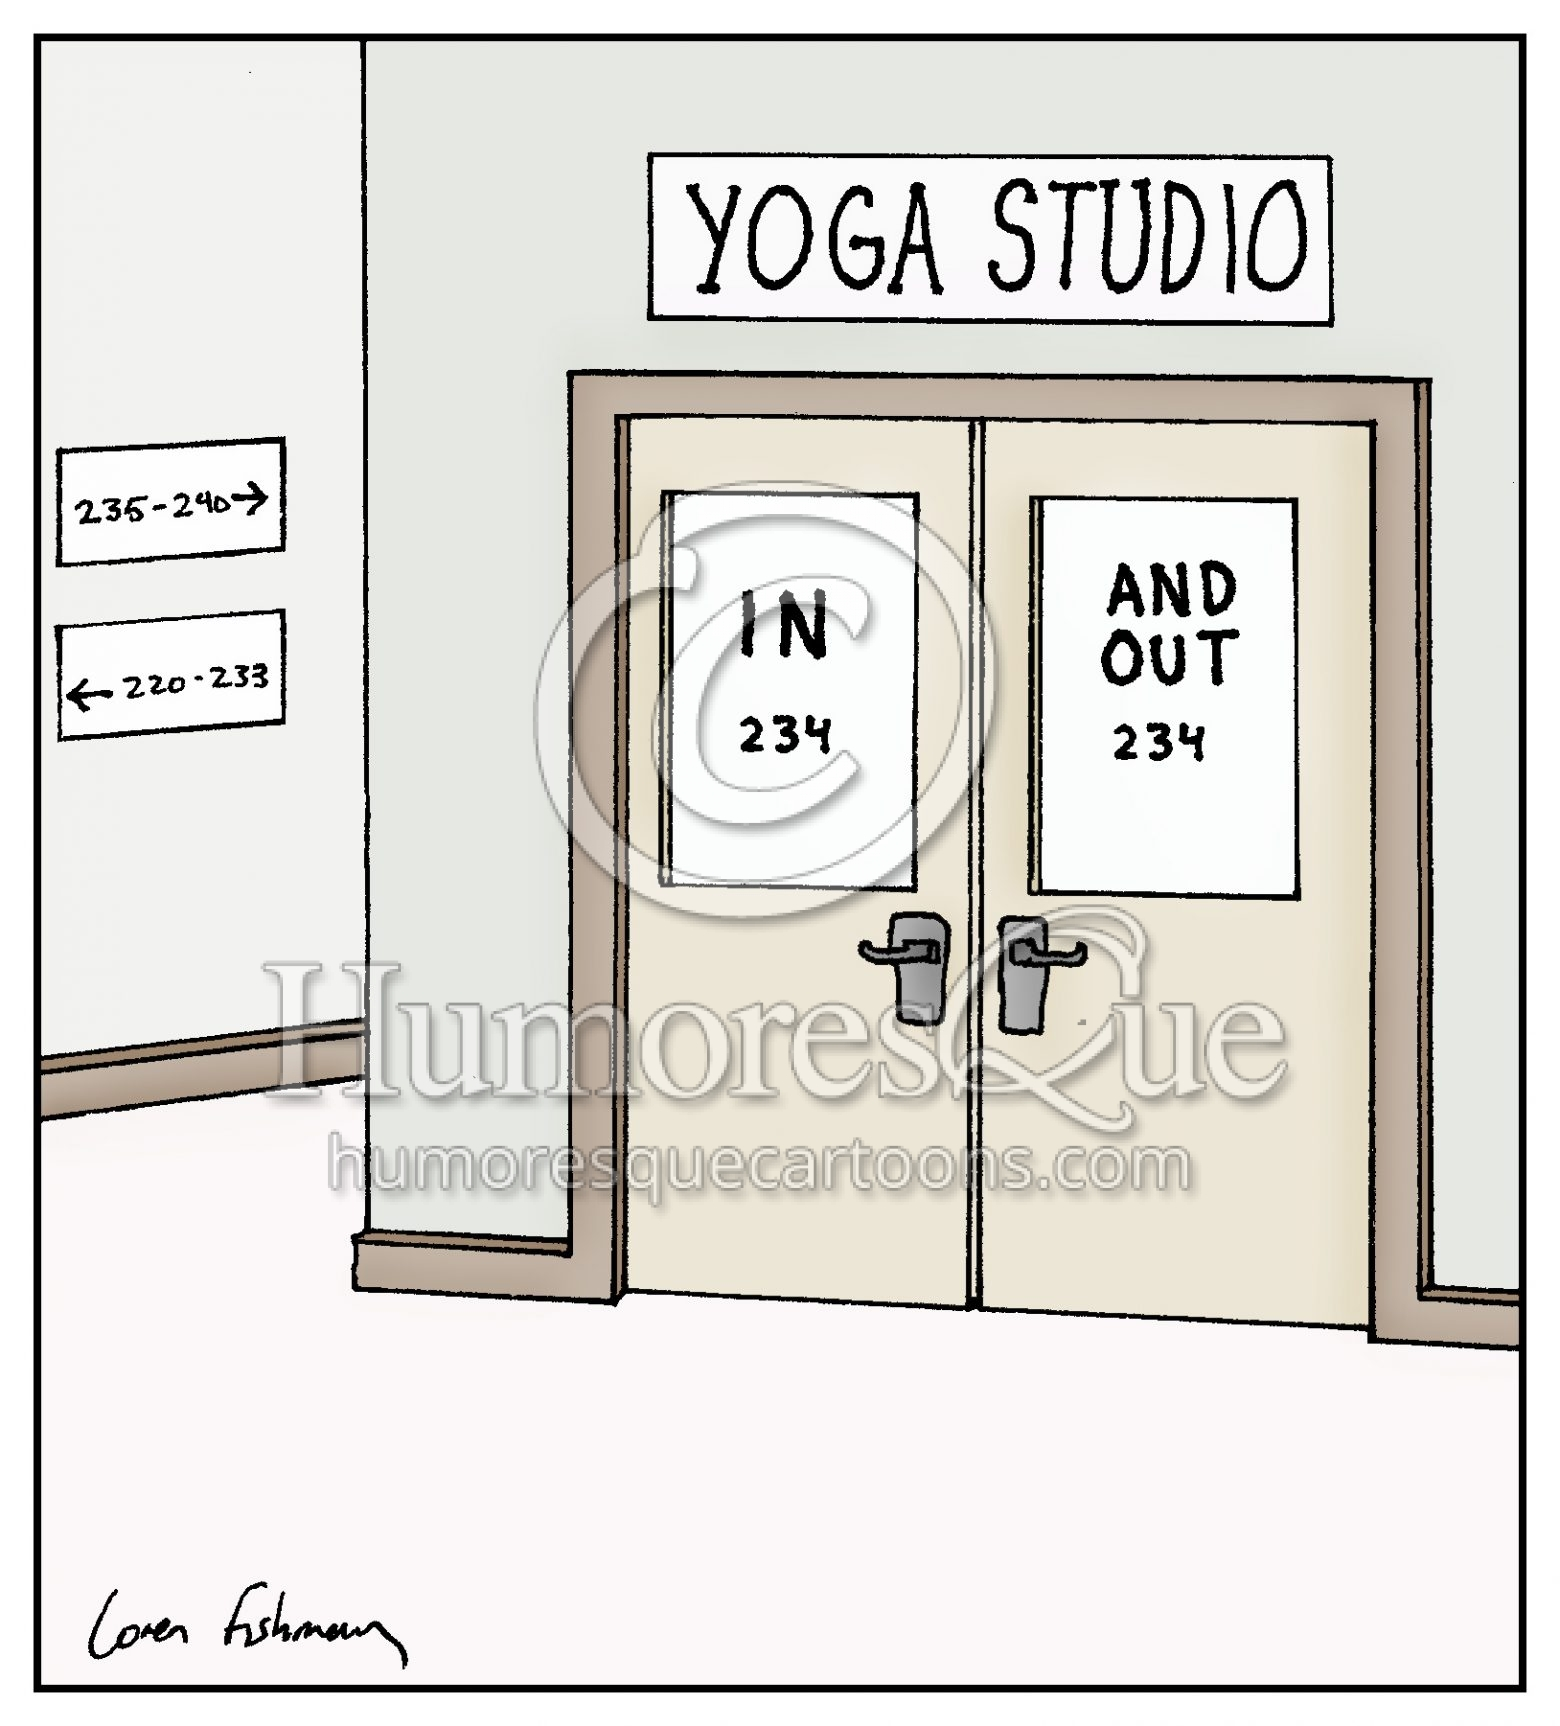 Cartoon Yoga Studio In 234 And Out 234 Humoresque Cartoons